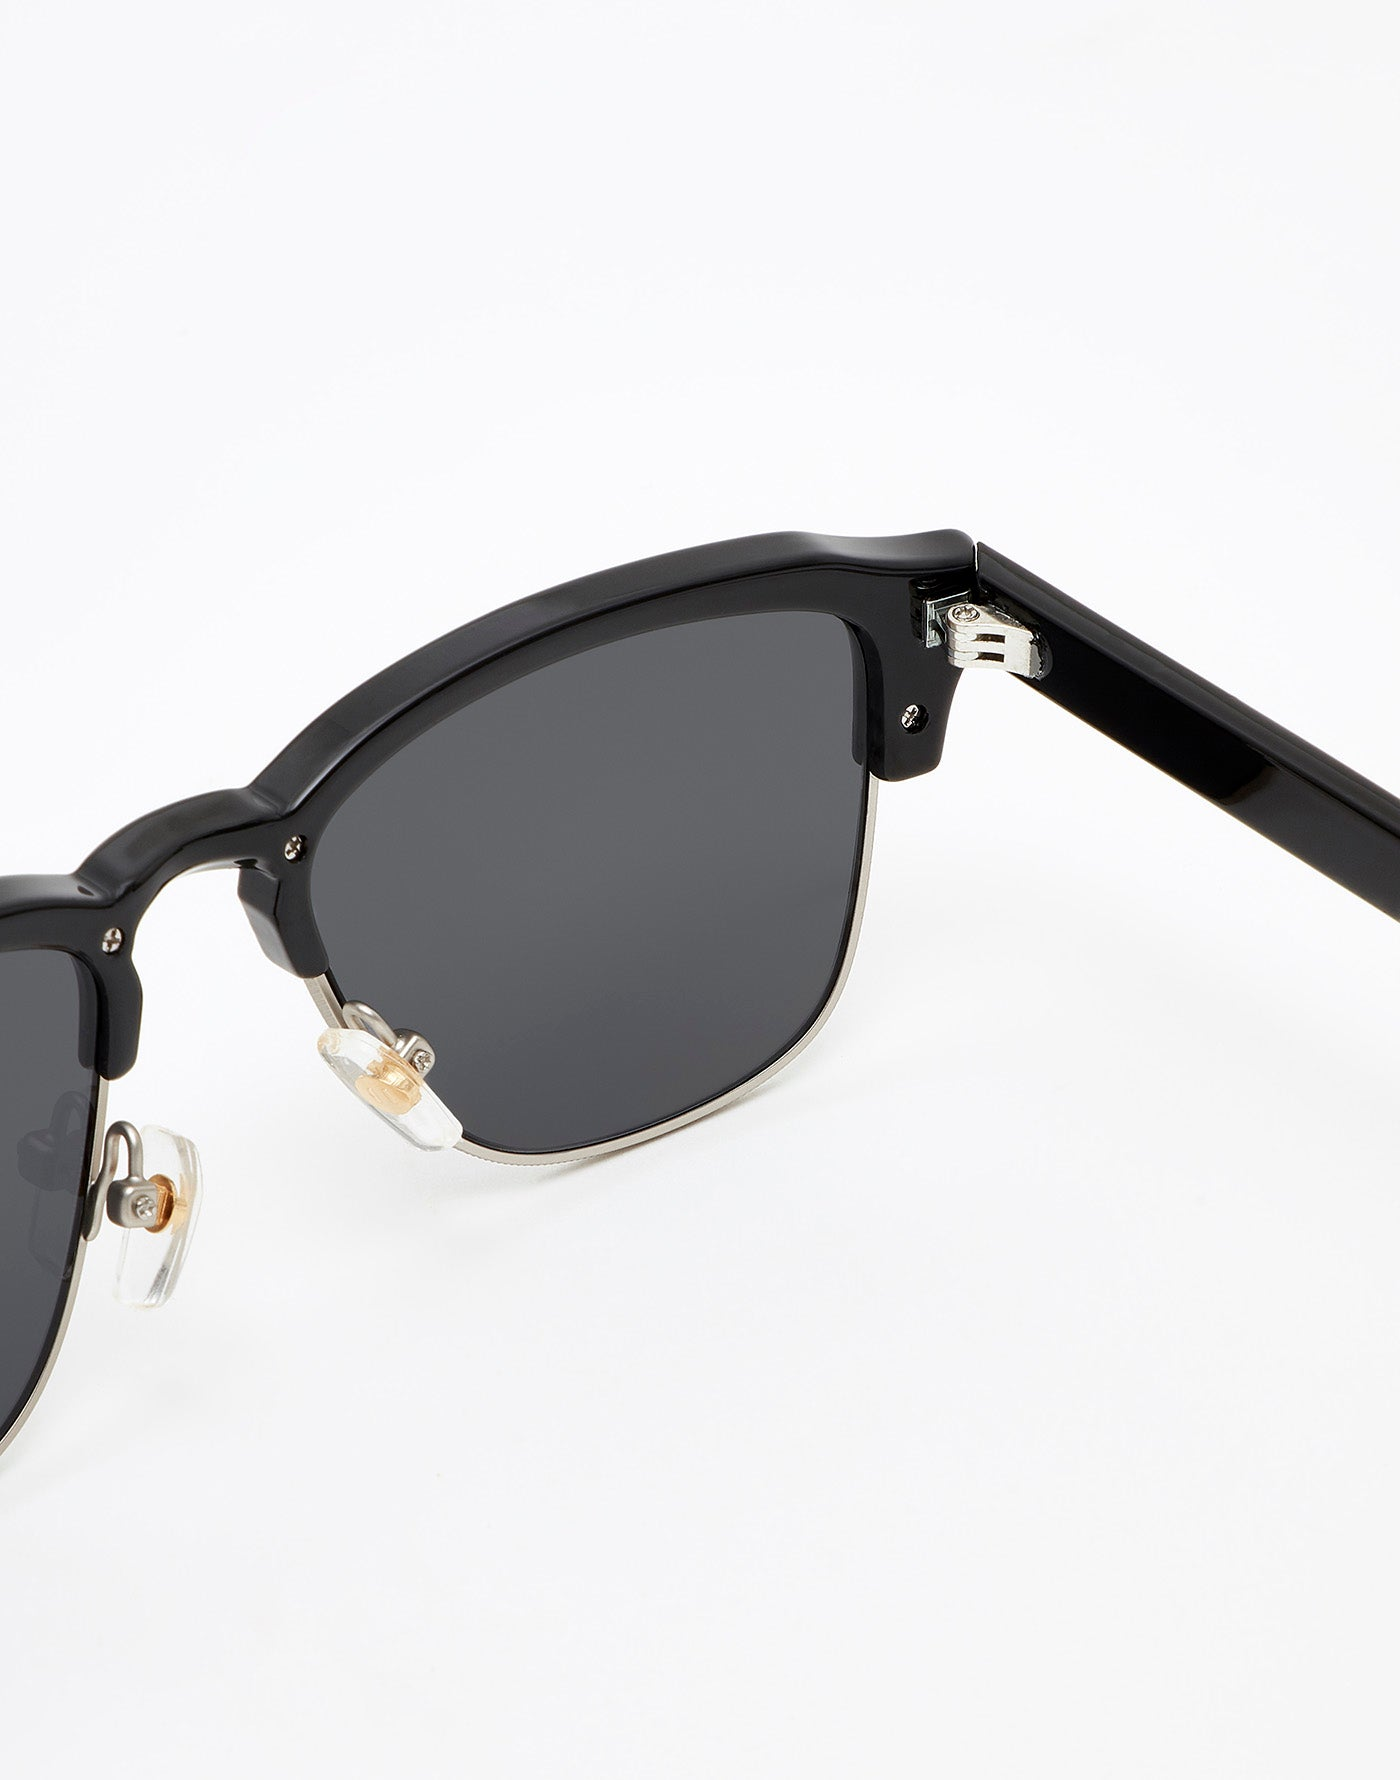 Diamond Black · Dark New Classic